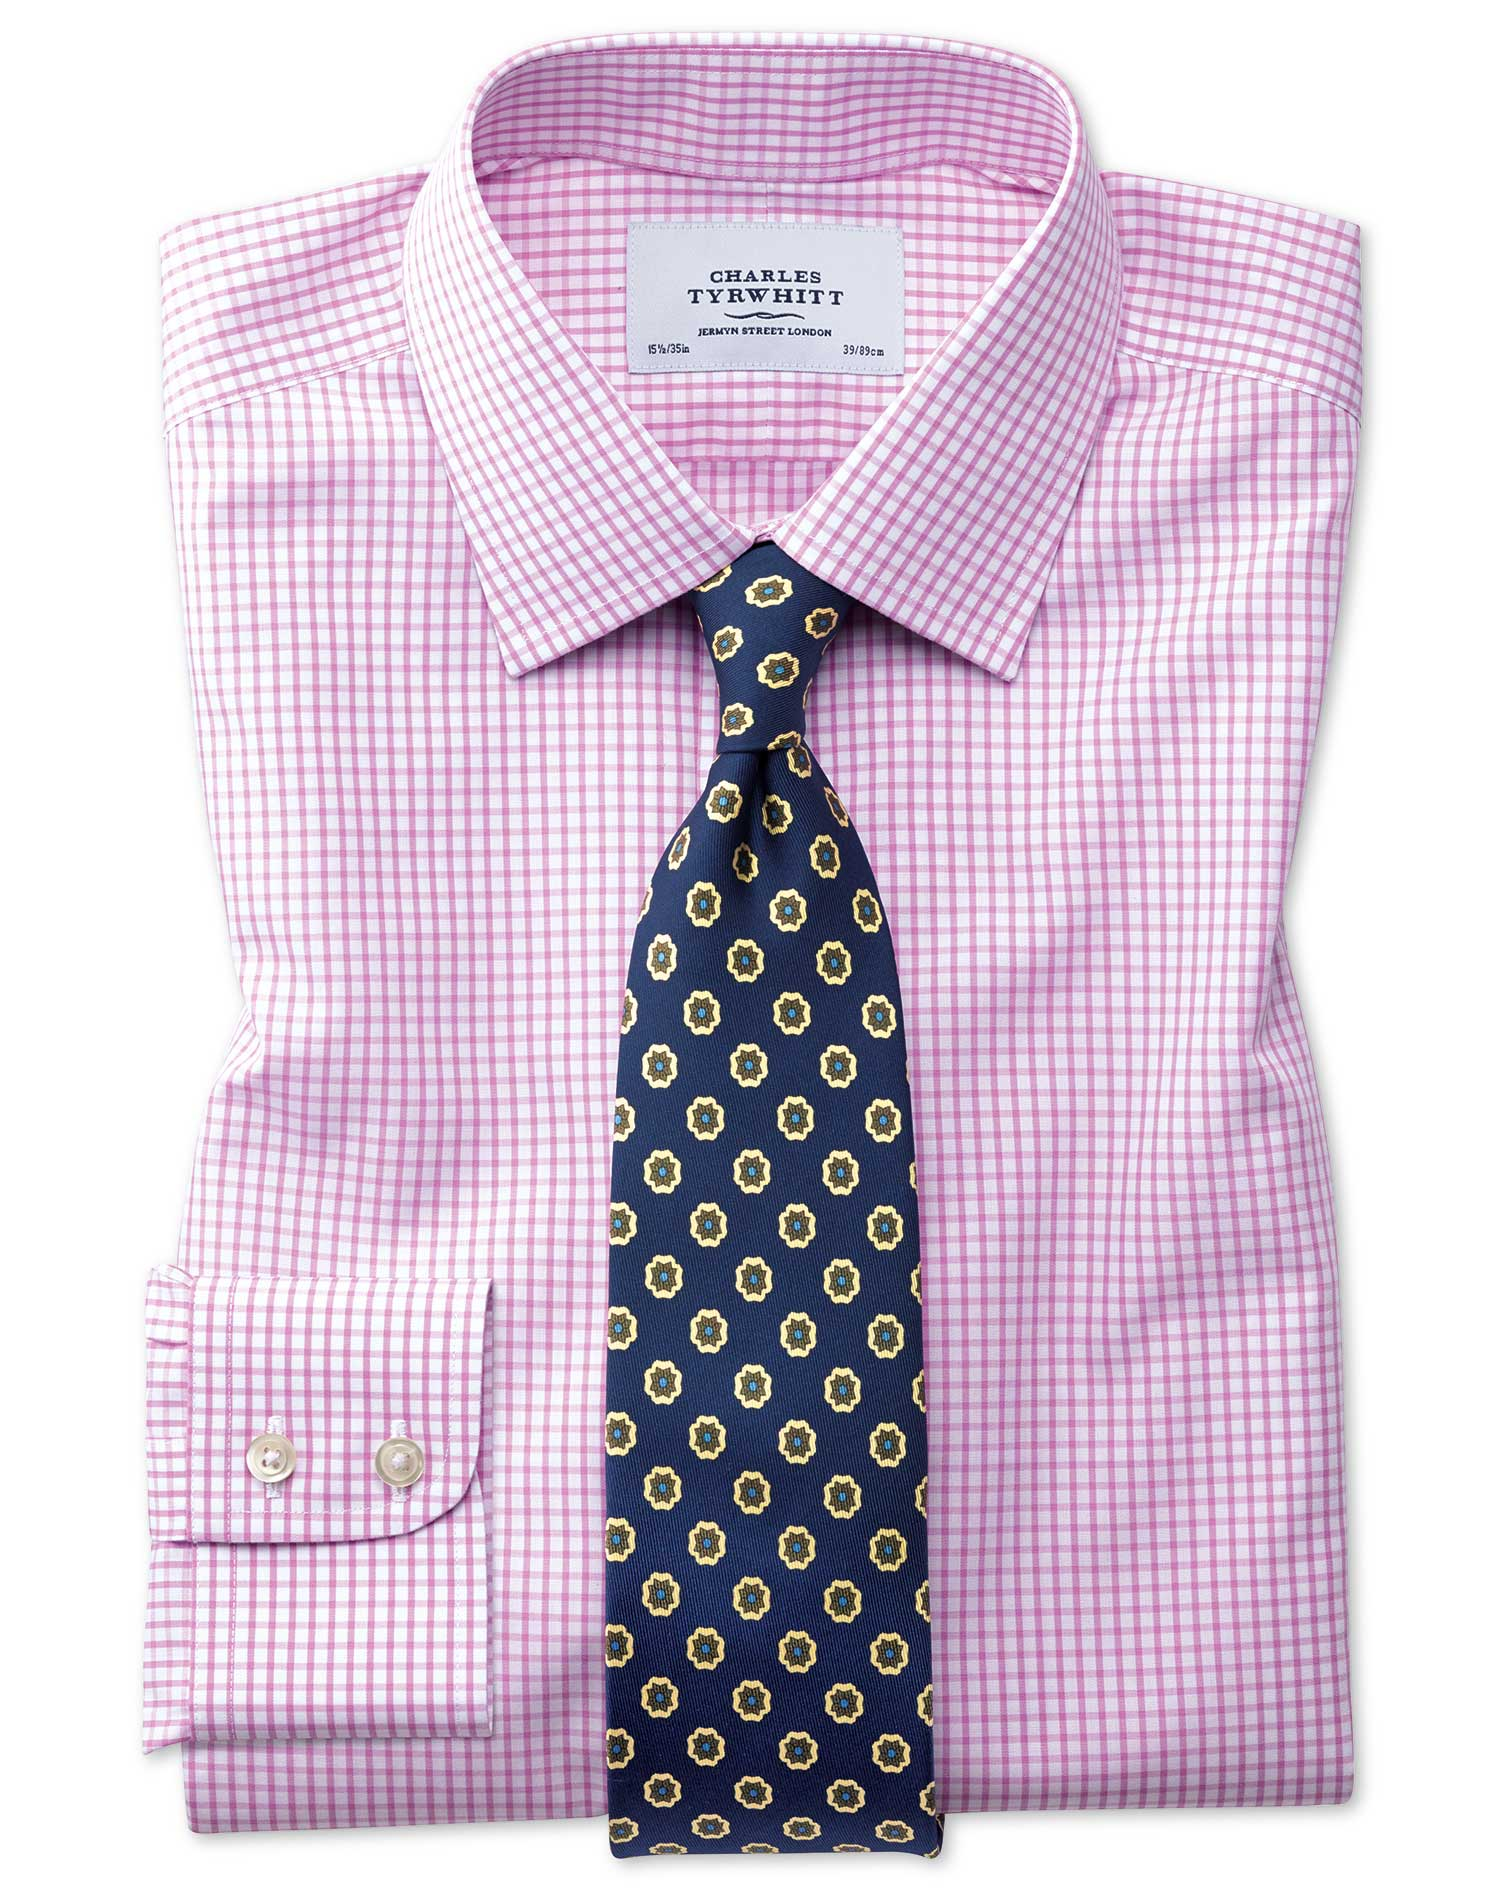 Slim Fit Non-Iron Grid Check Pink Cotton Formal Shirt Single Cuff Size 16/36 by Charles Tyrwhitt from Charles Tyrwhitt